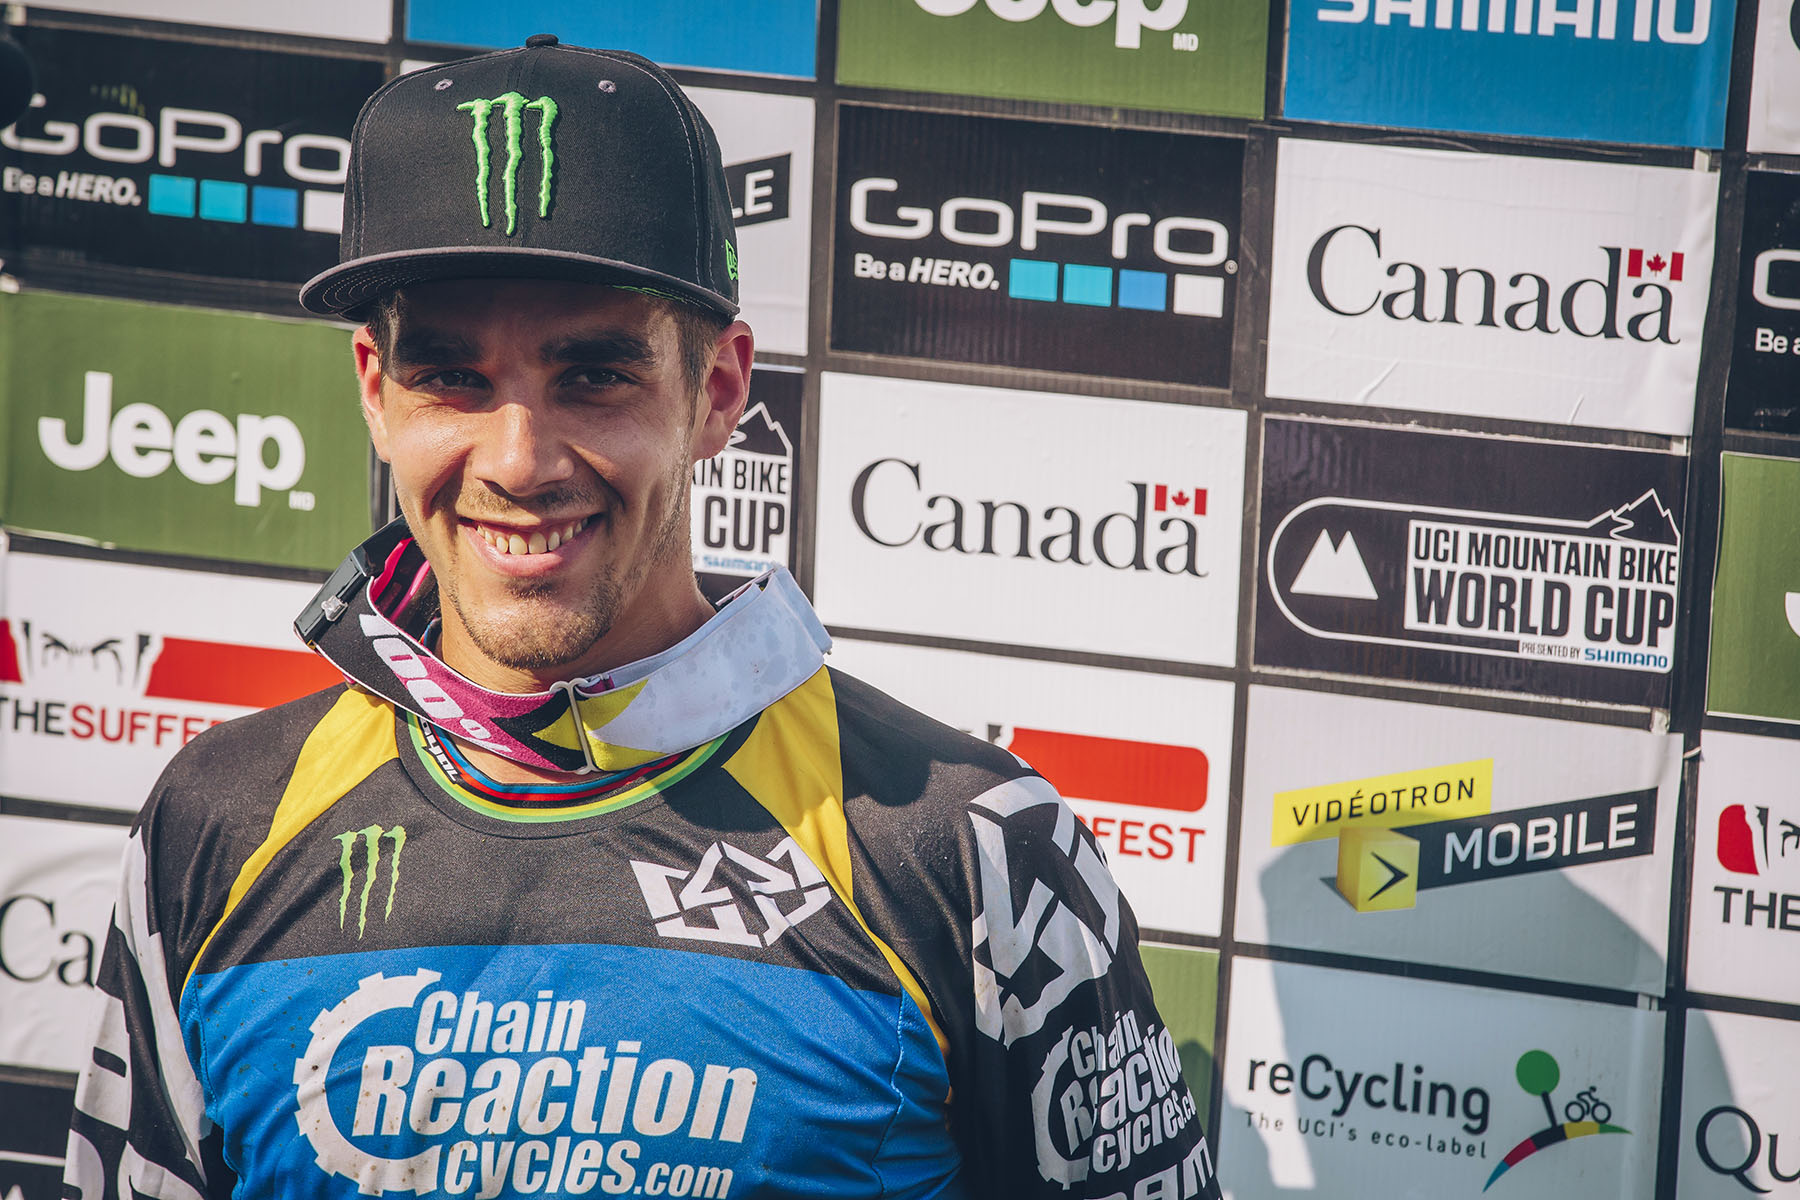 Big smiles all round from Sam and the team as he takes his first win under the wing of CRC.